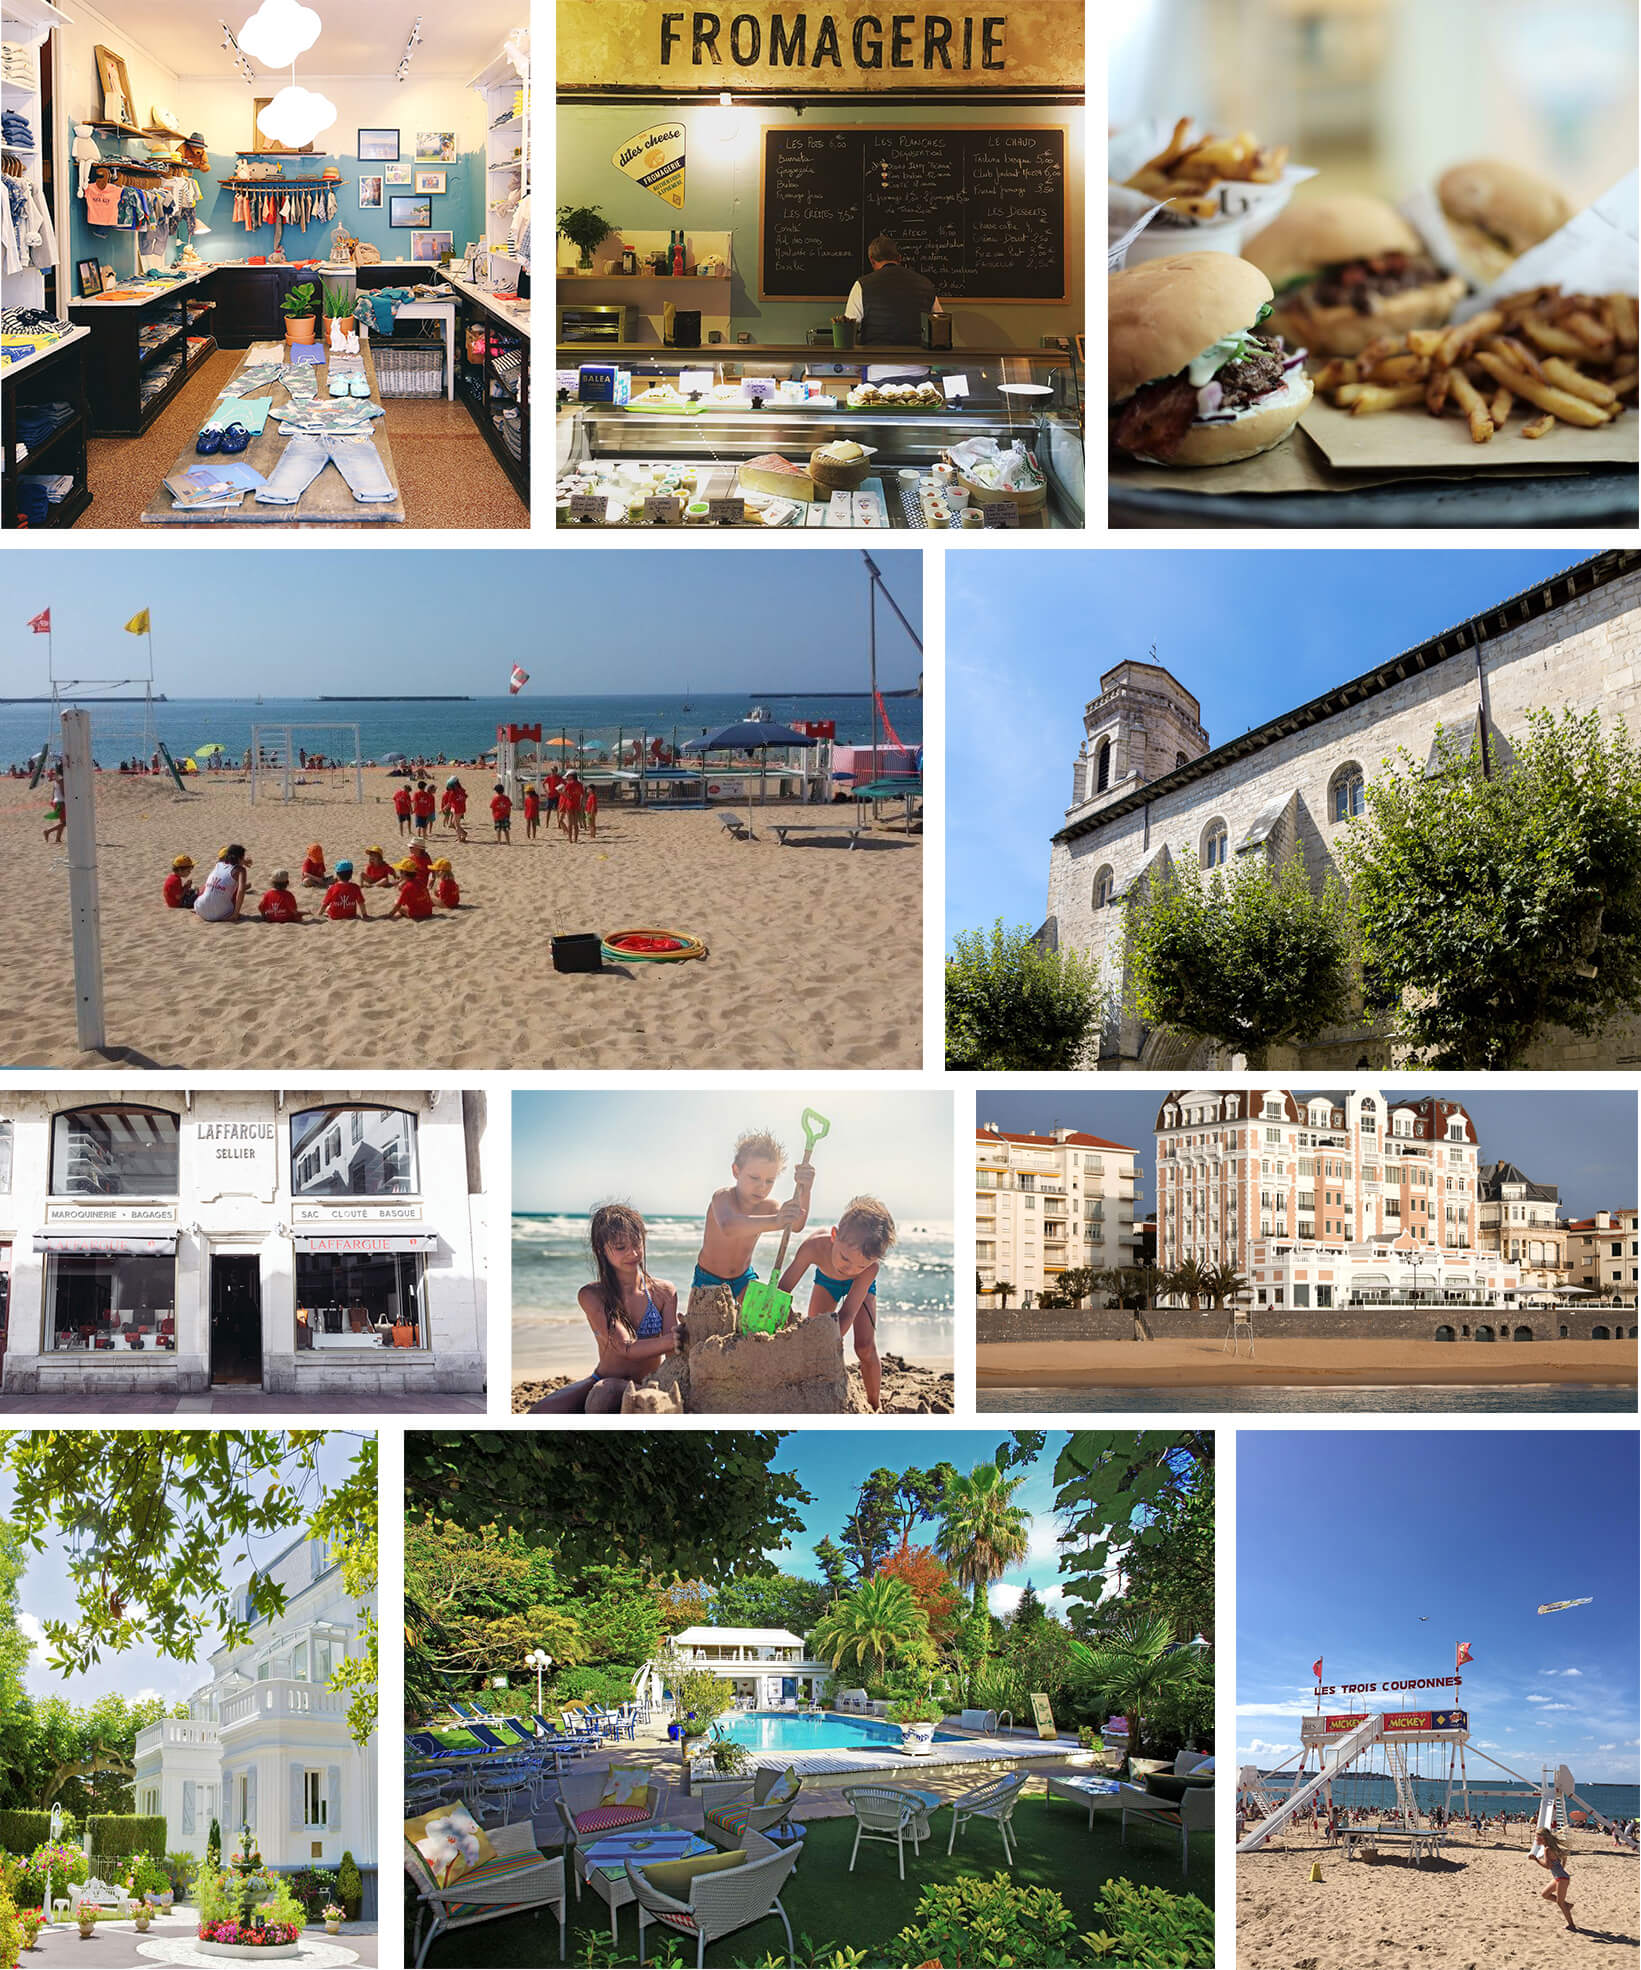 collage of Saint Jean de Luz, France